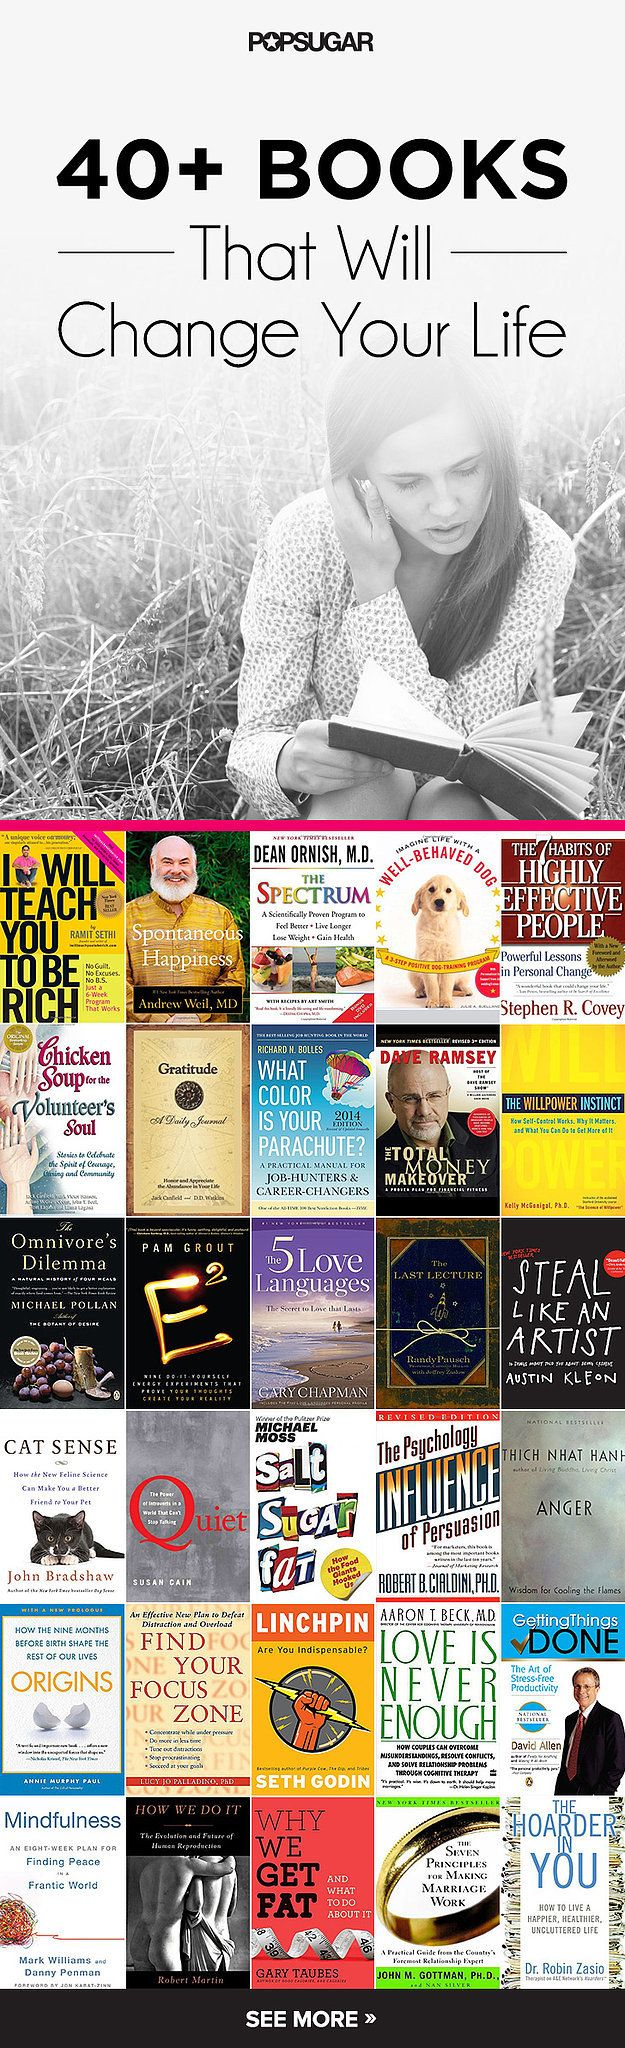 40++Life-Changing+Books+to+Read+This+Year